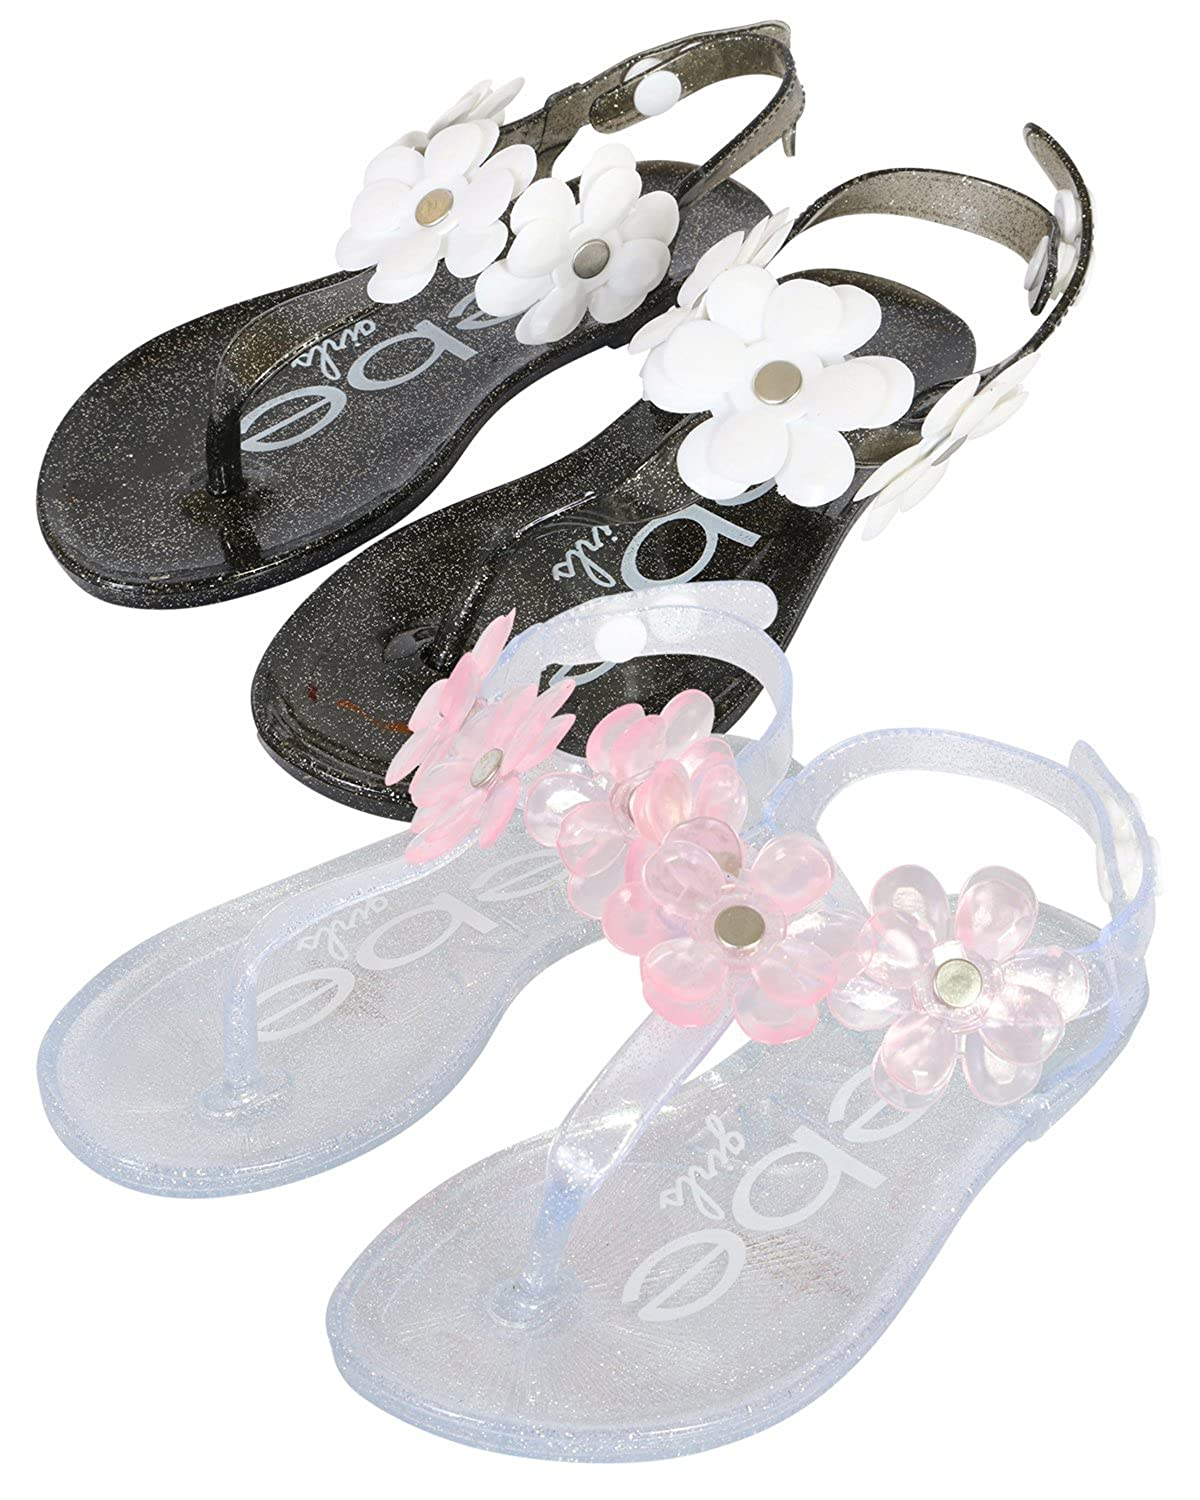 9ae15db2f99a bebe Girls Flower Thong Jelly Sandals - Set of 2 - Ankle Strap Open Toe  Flat Shoes (Toddler Little Kid)